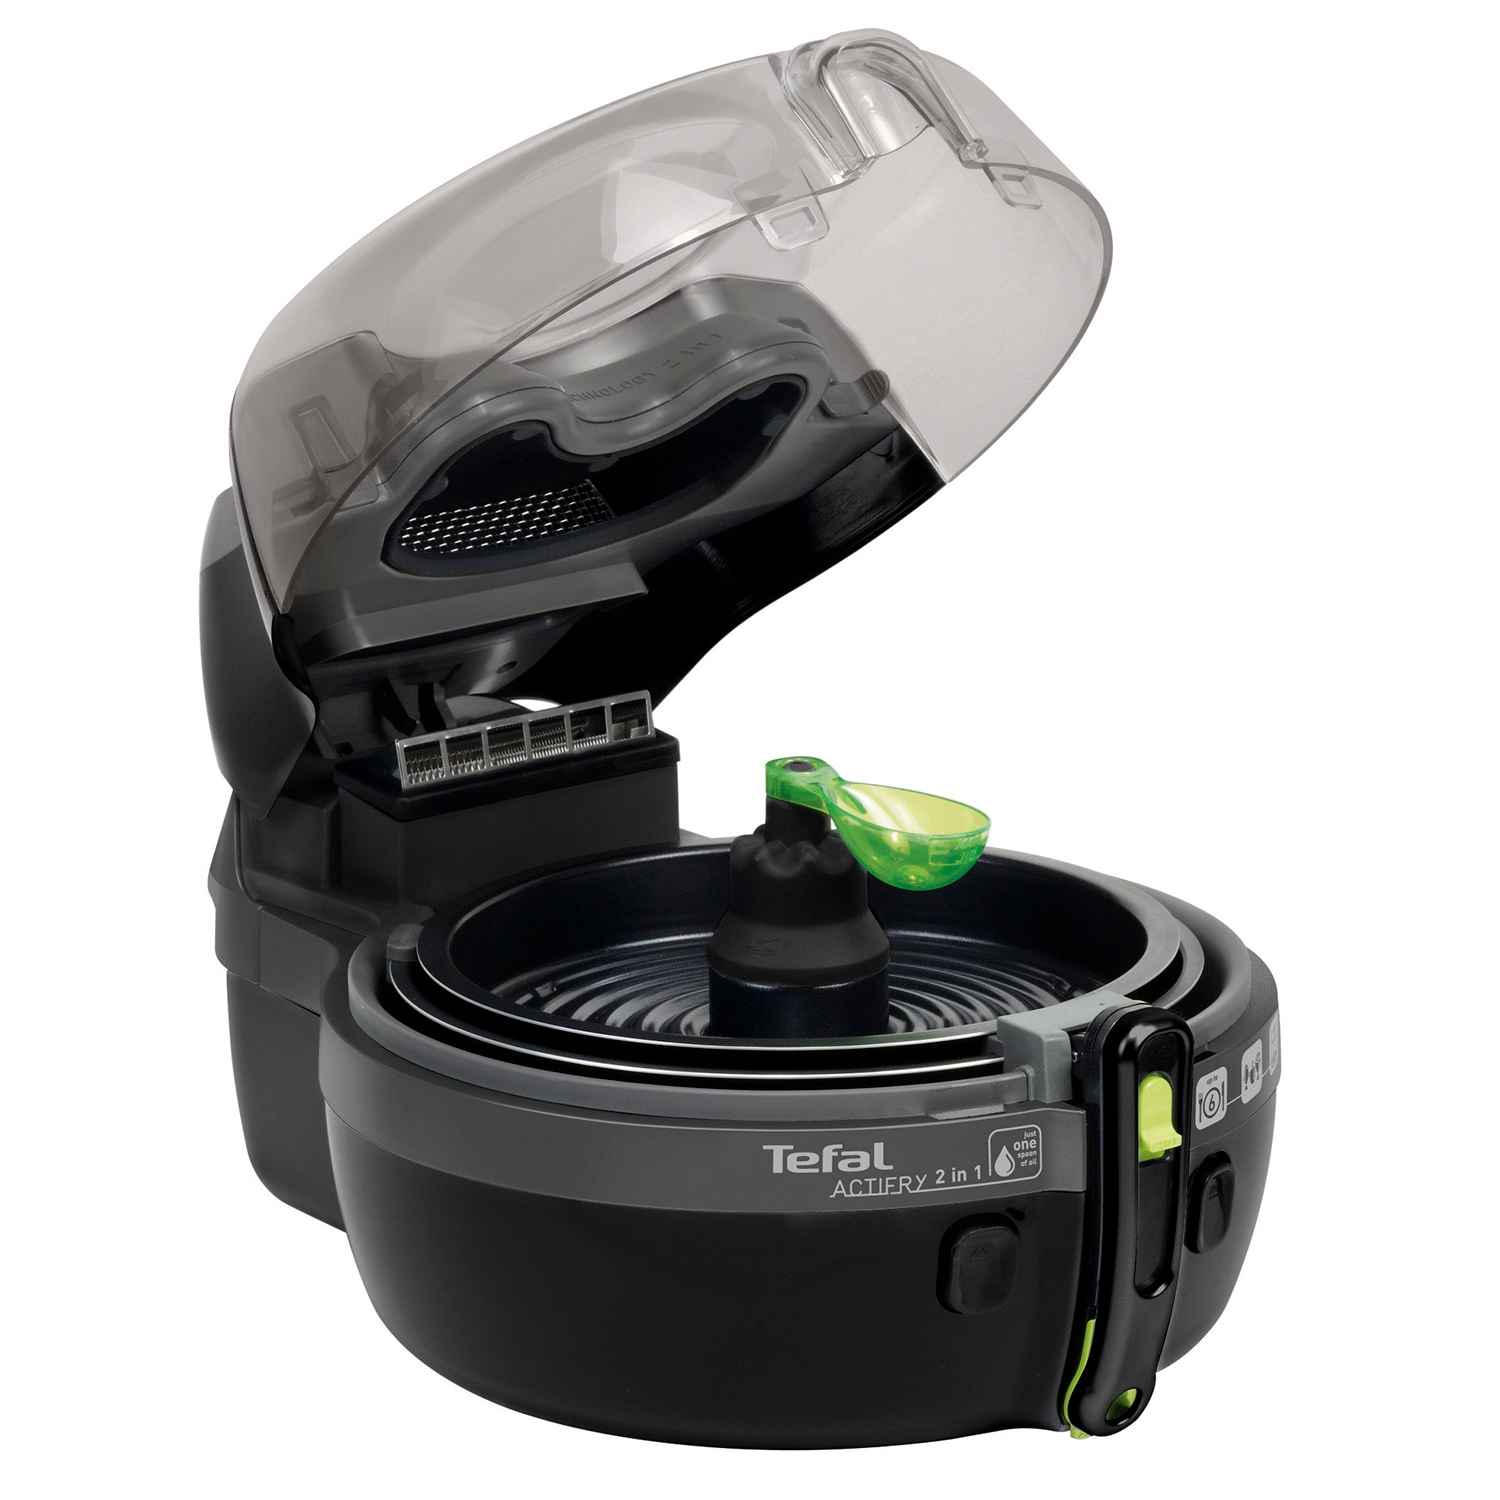 tefal yv9601 actifry 2in1 heissluft fritteuse ebay. Black Bedroom Furniture Sets. Home Design Ideas